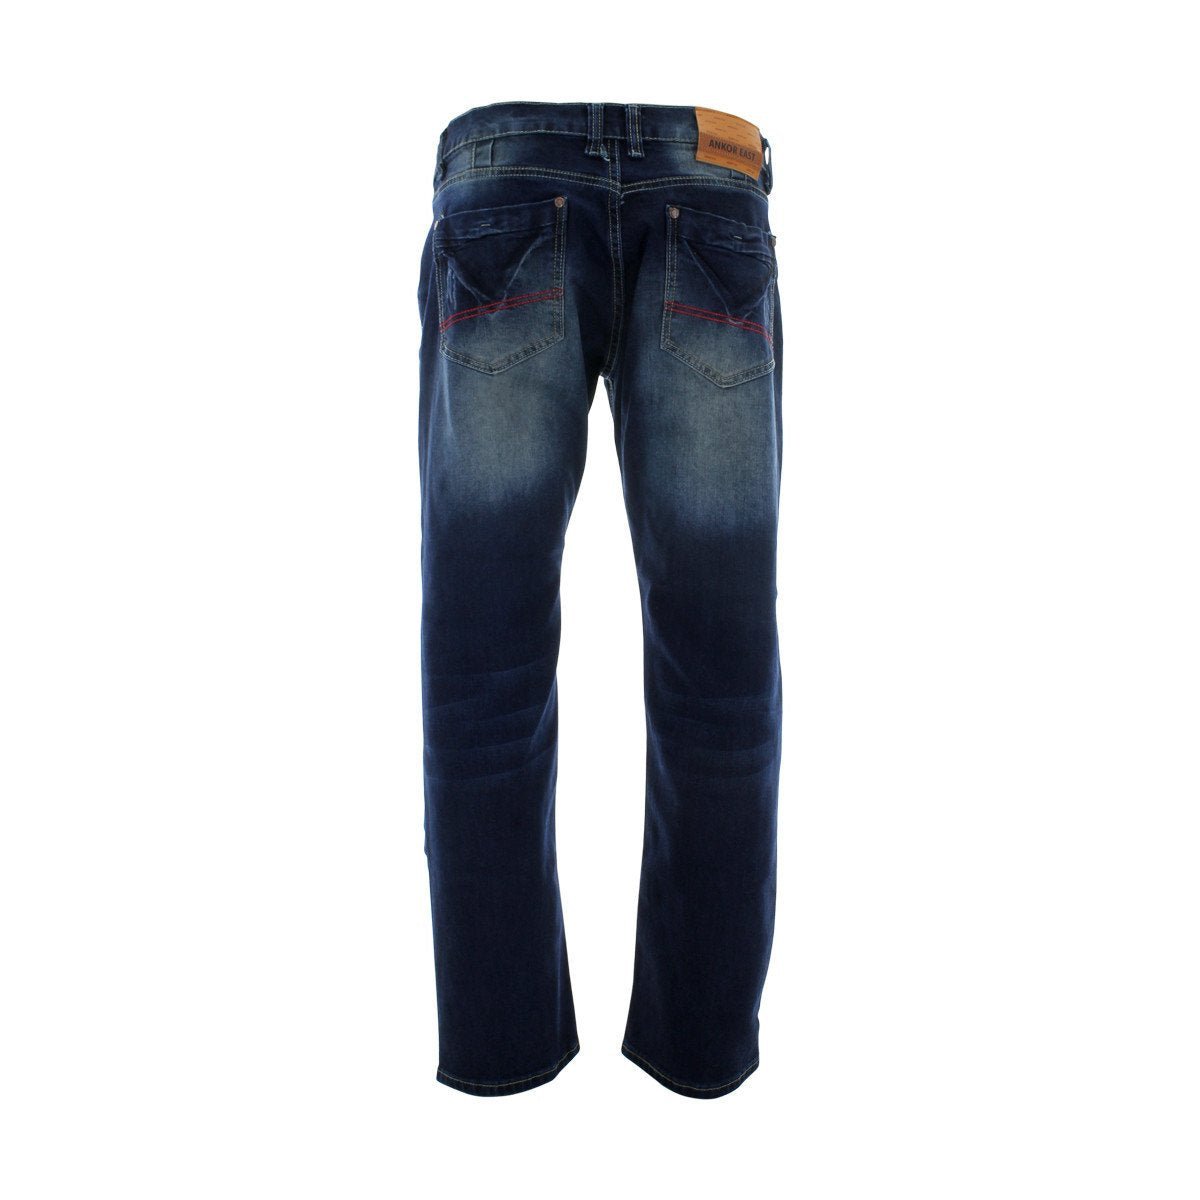 Ankor East - Men's Blasting With Back Pocket Jeans - Dark Blue - V.I.M. - 2